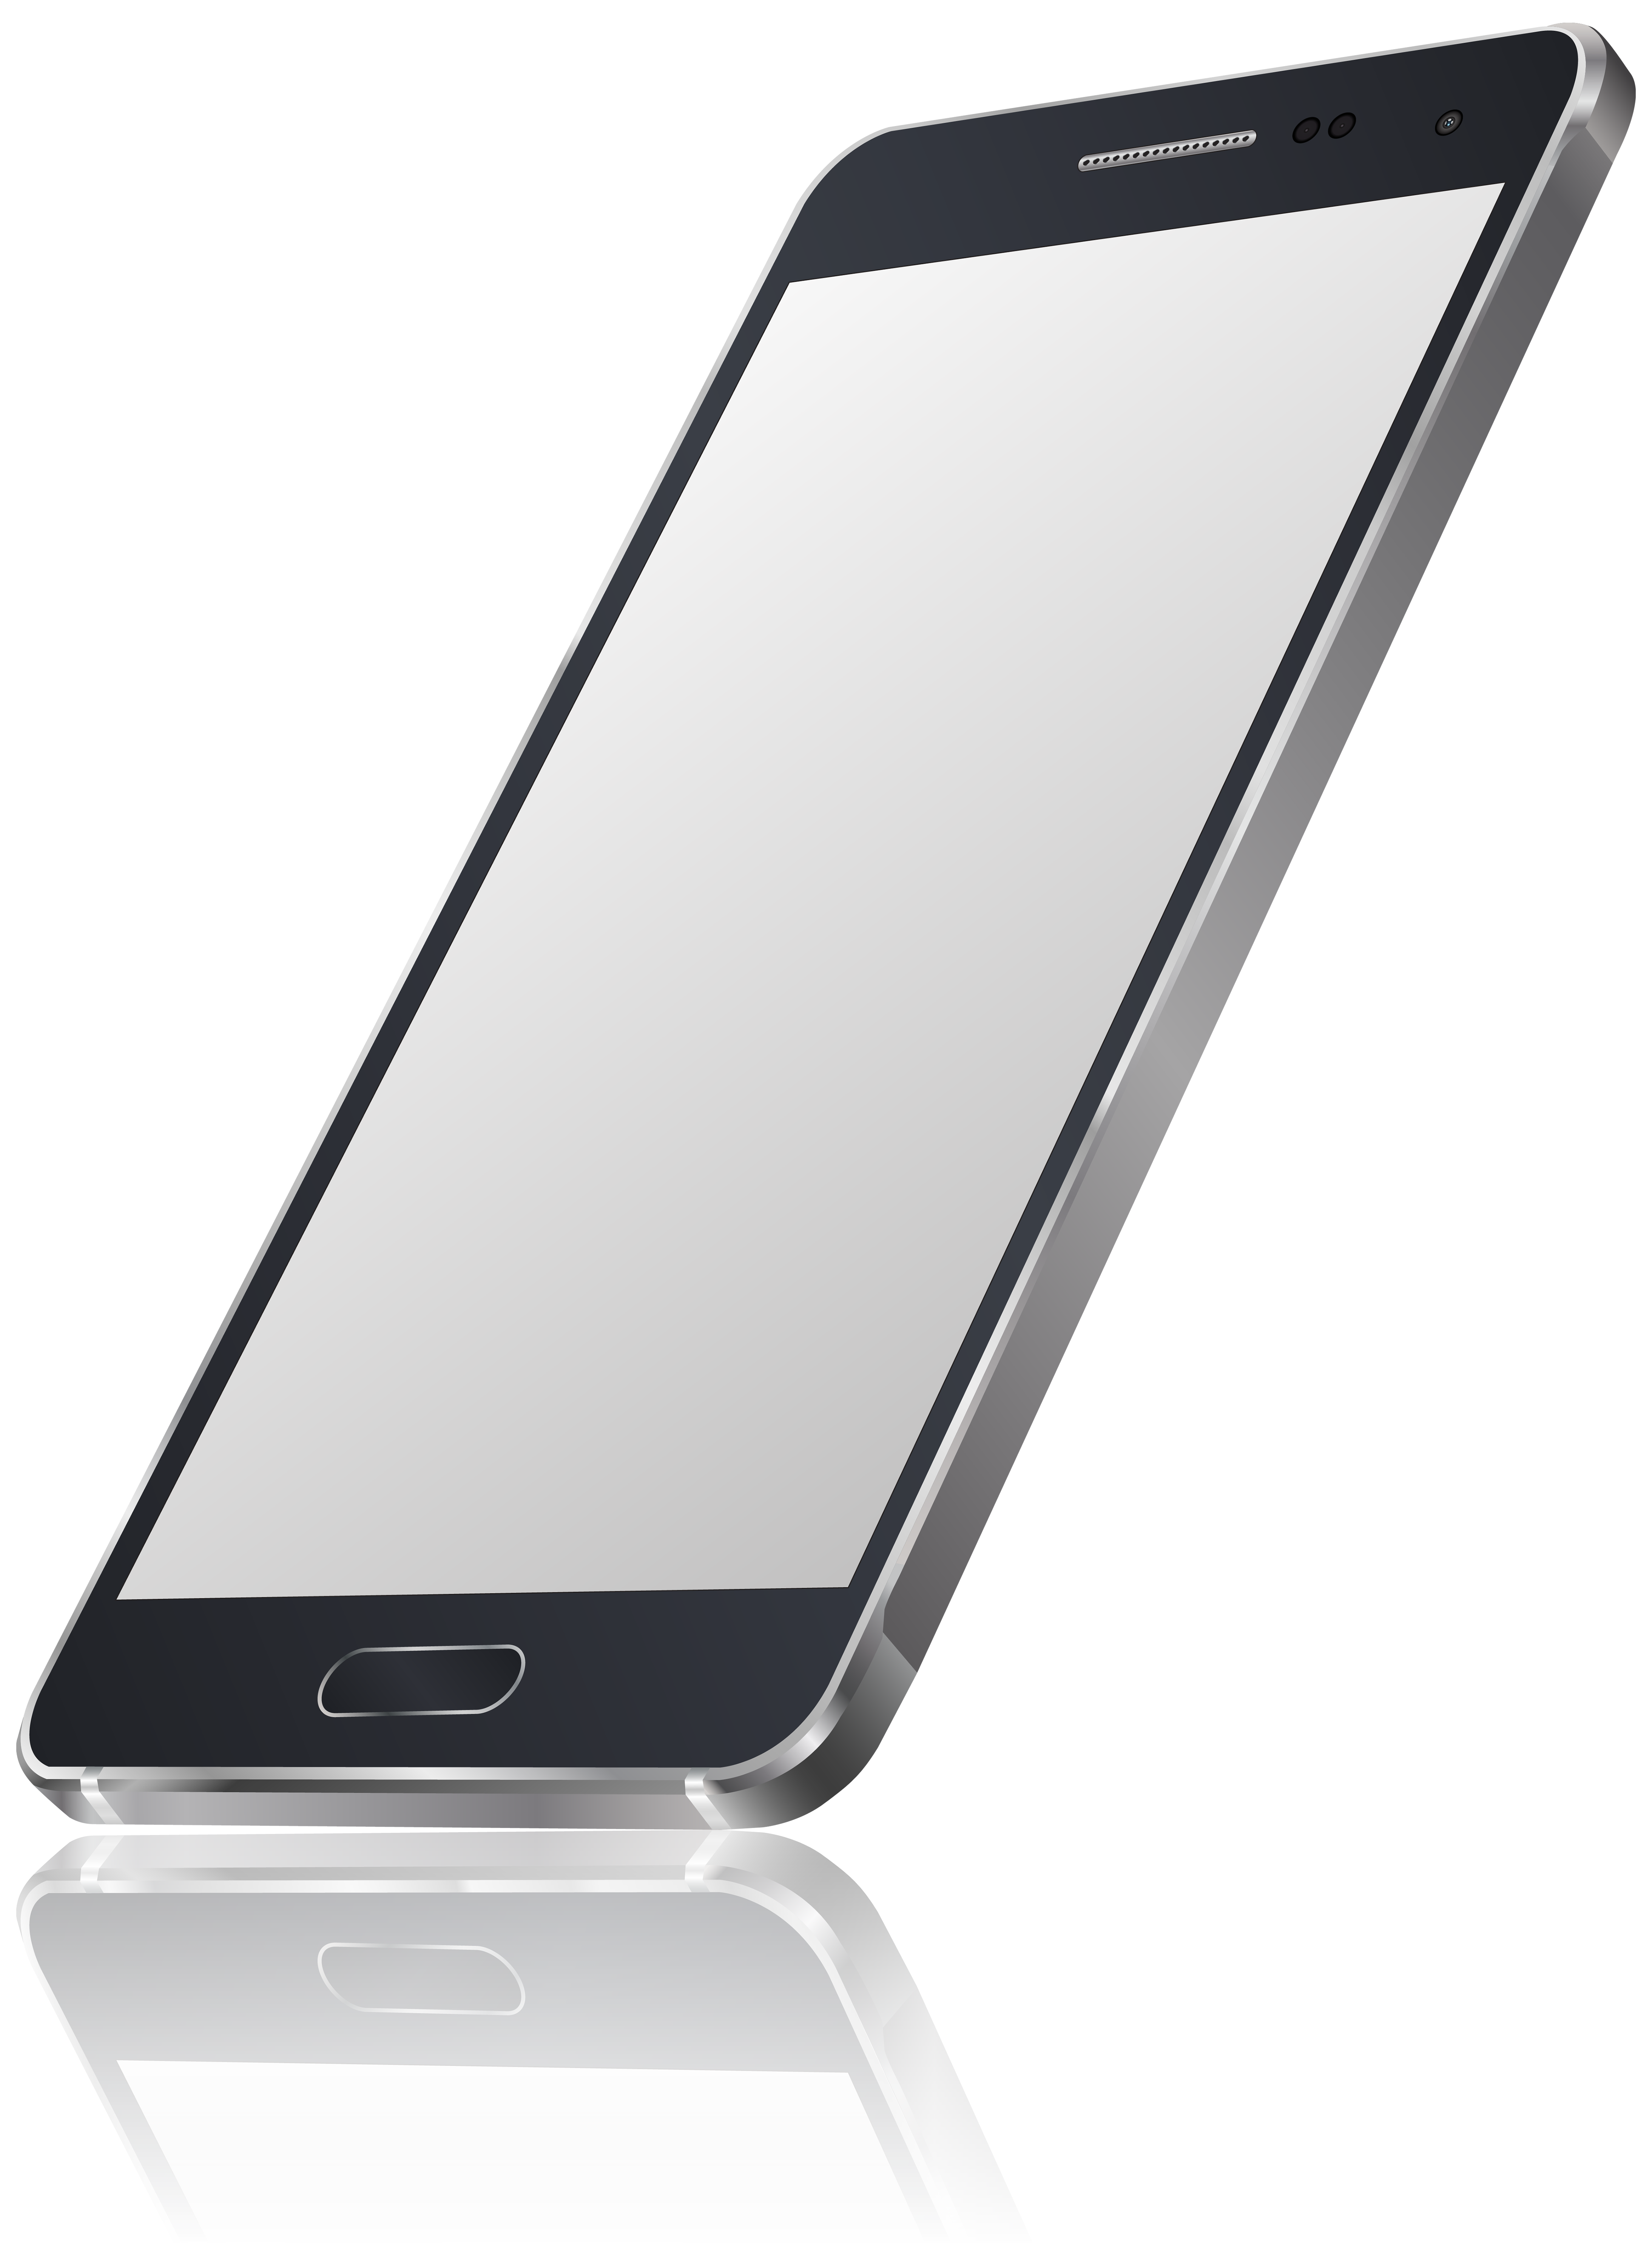 Smartphone png clip art. Telephone clipart mobail